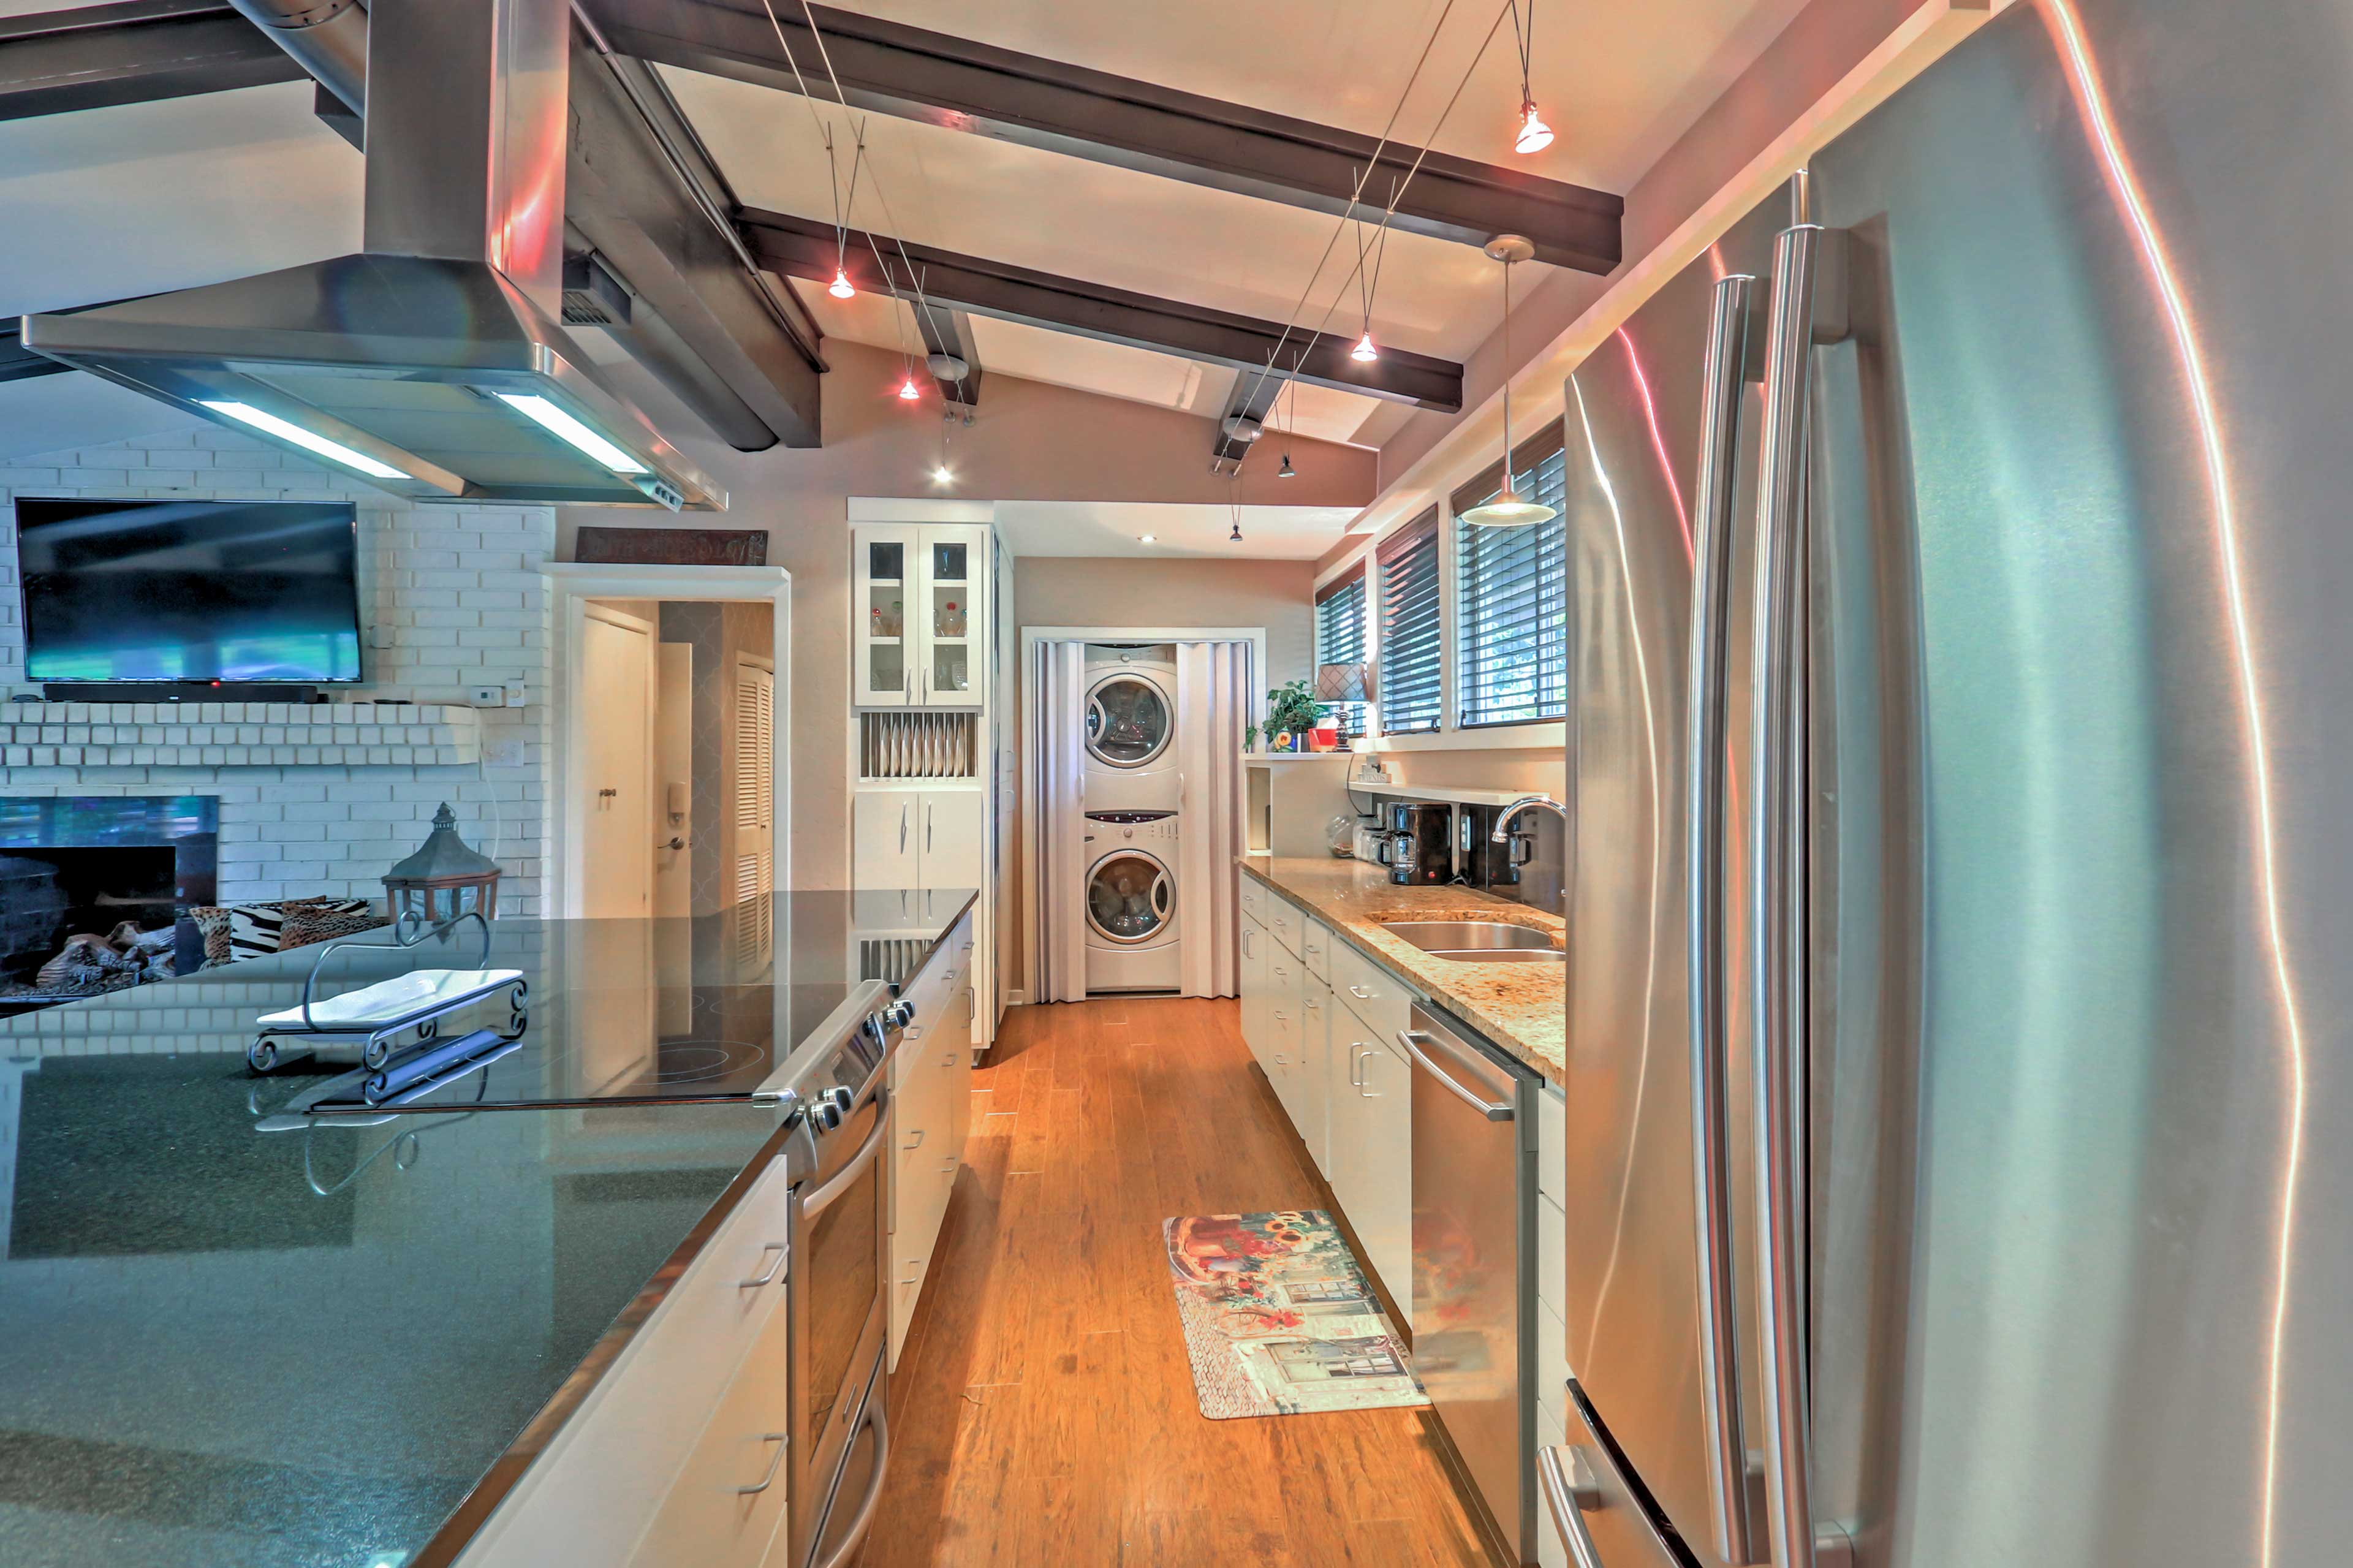 The fully equipped kitchen opens to the laundry closet.